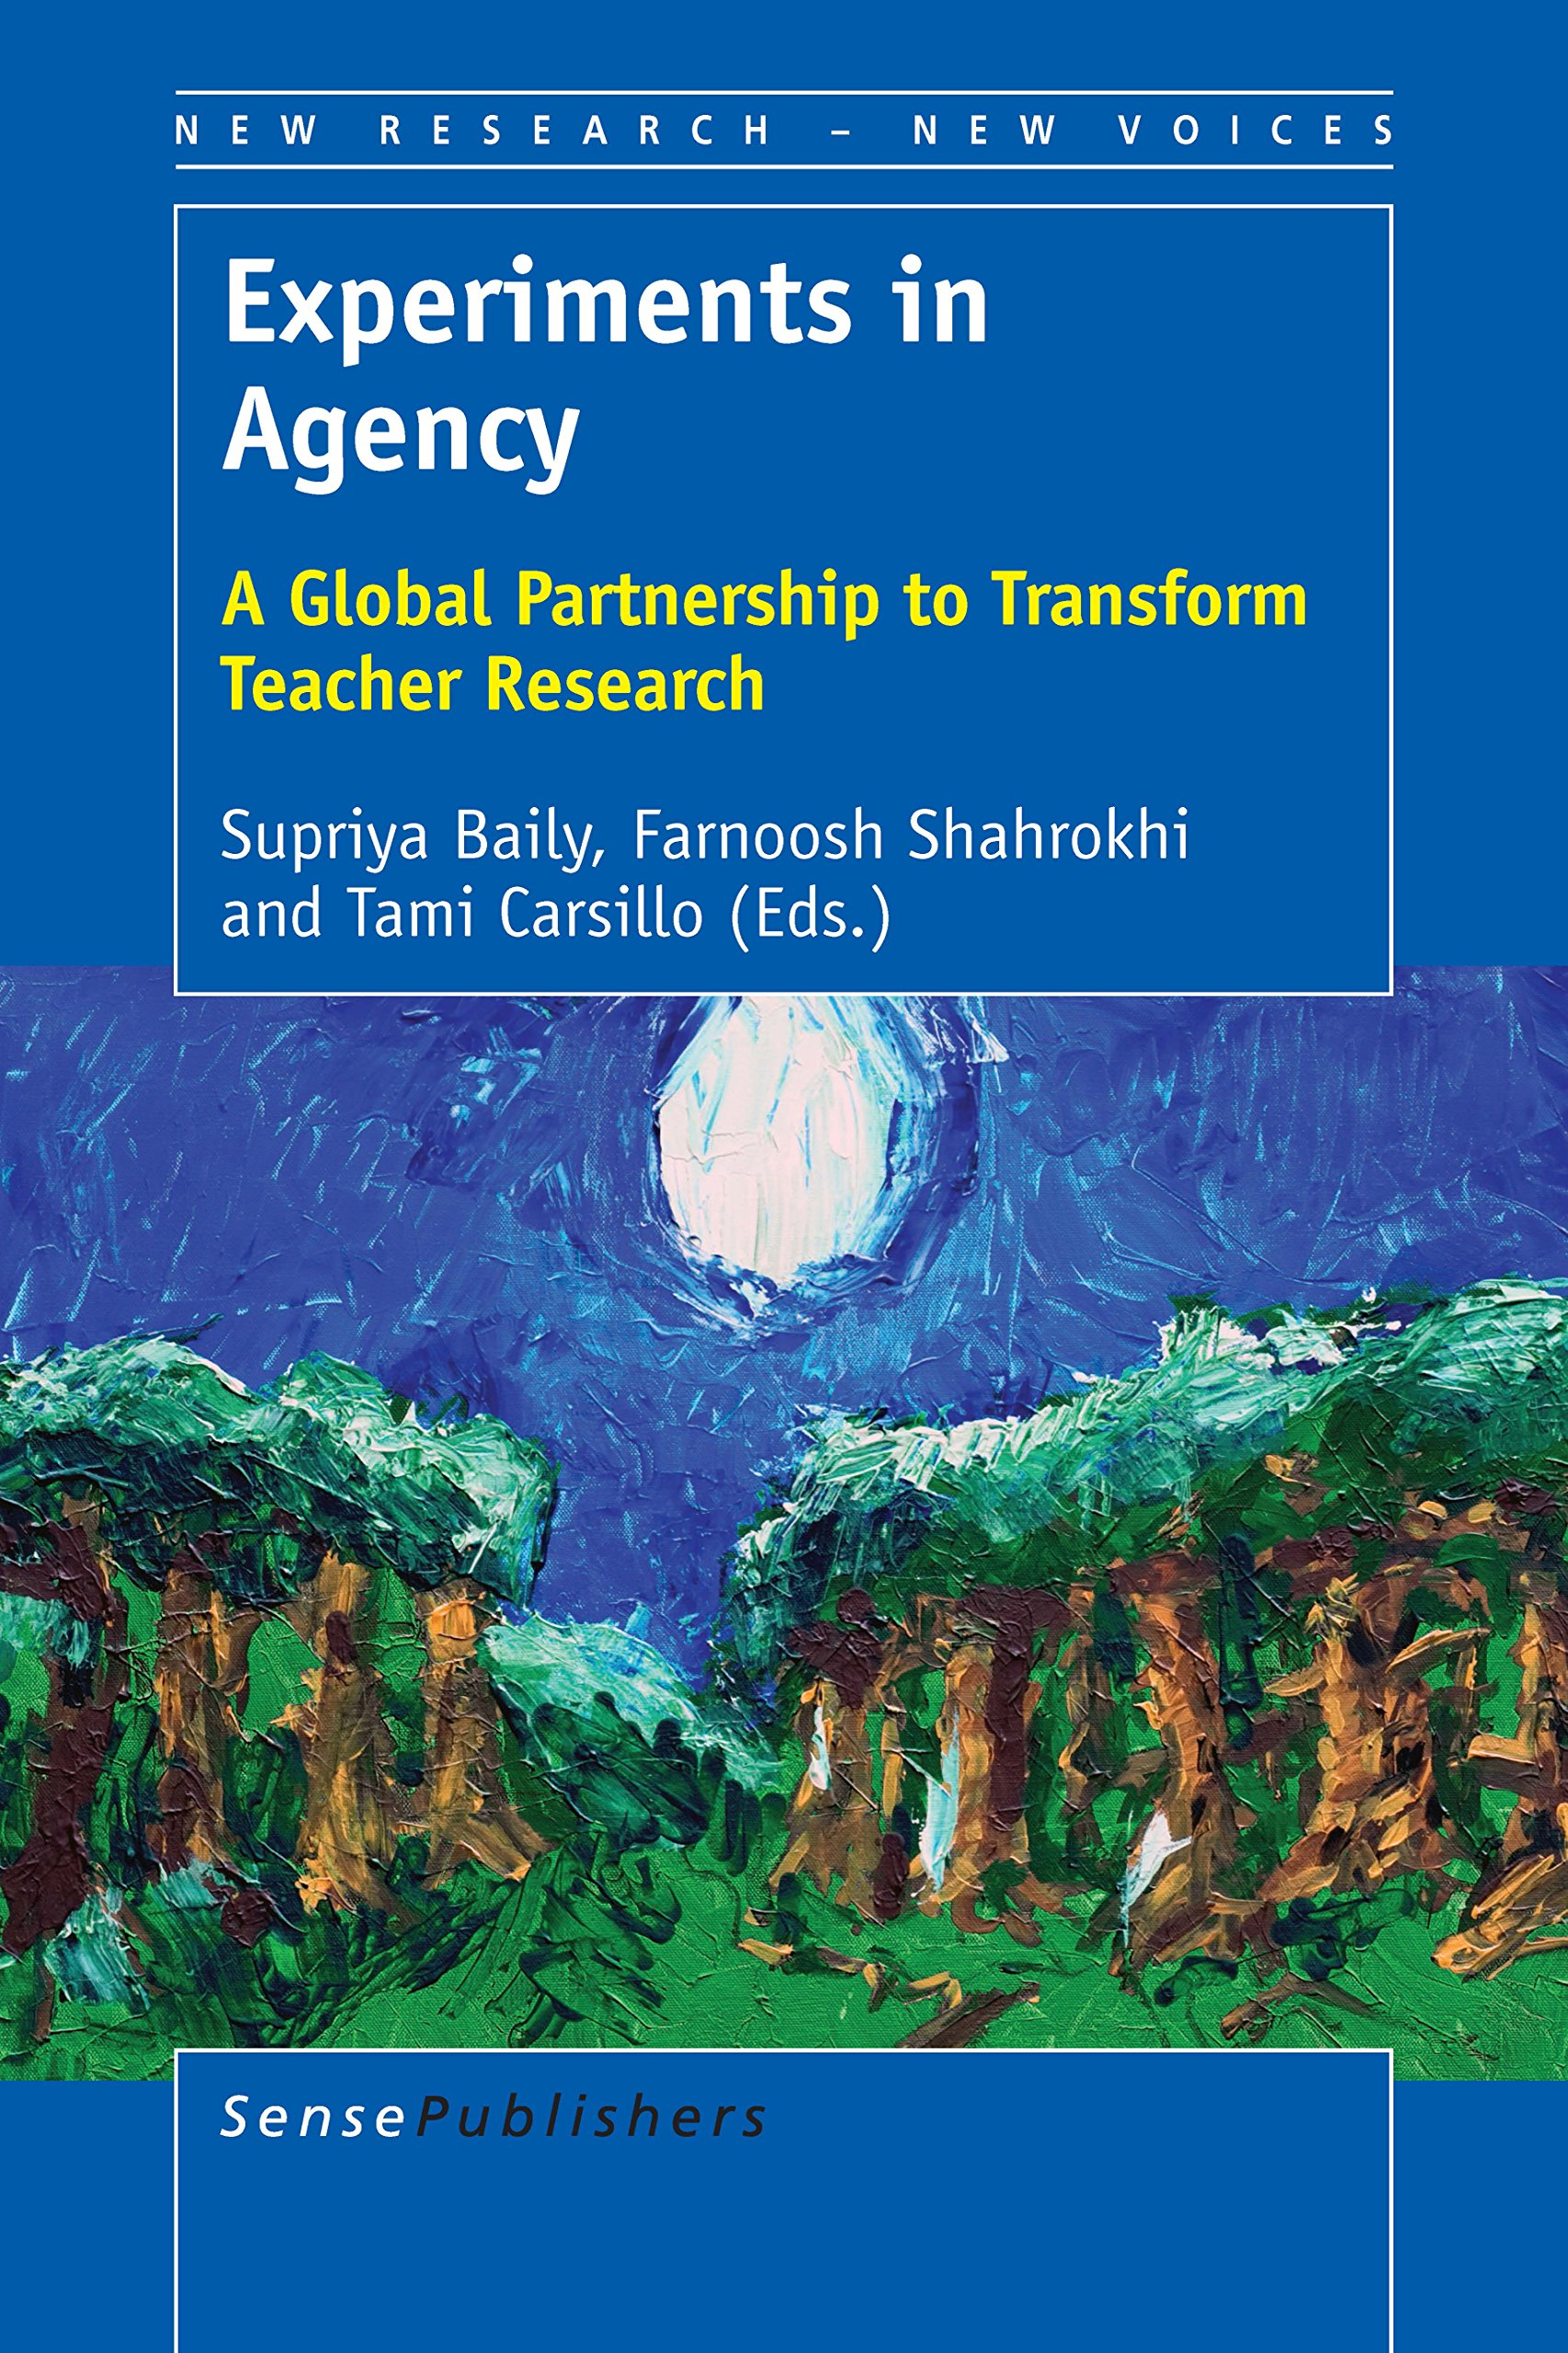 Download Experiments in Agency (New Research - New Voices) pdf